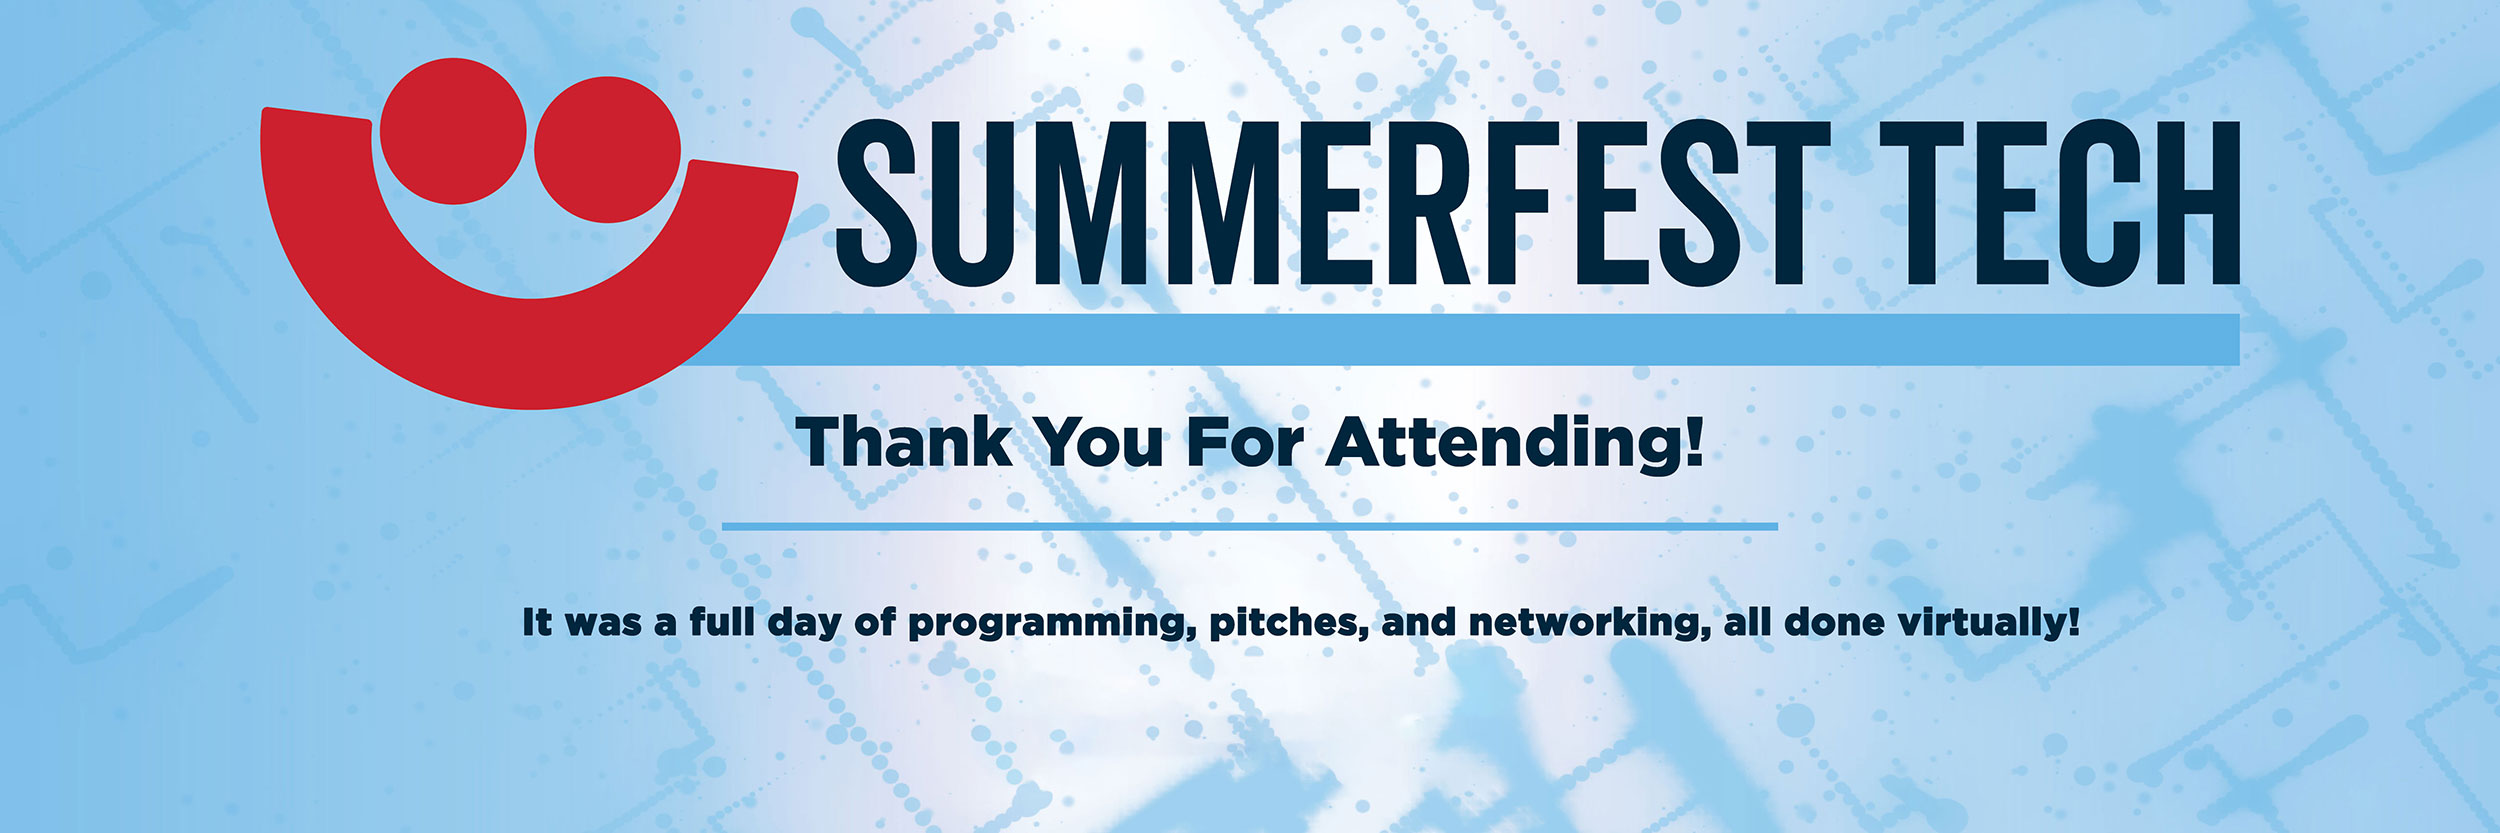 Summerfest Tech 2020 Thank You